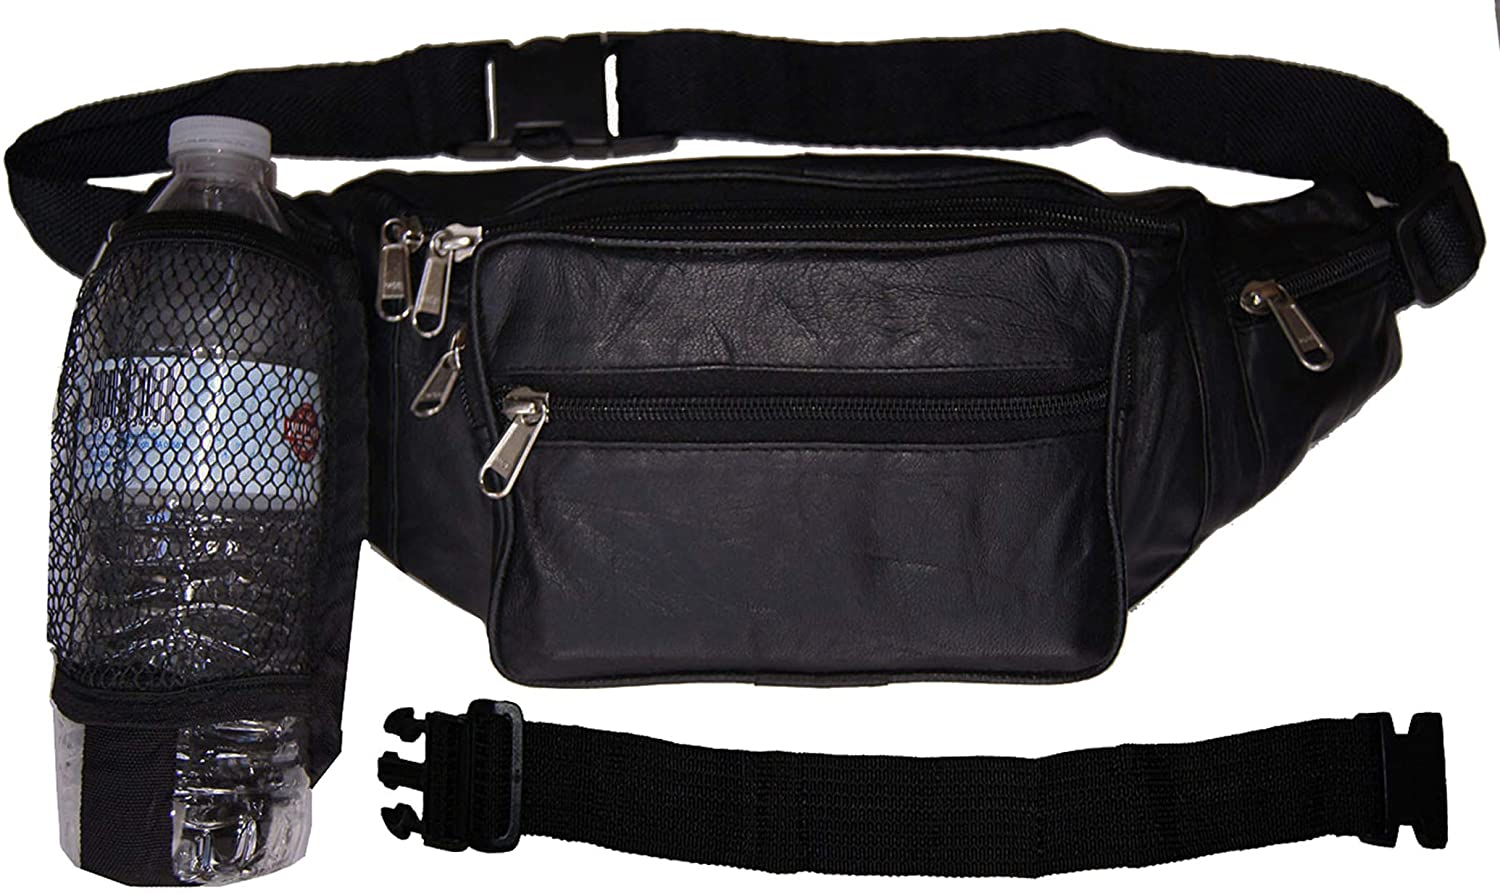 AG Wallets Netted Water Bottle Fanny Pack Waist Bag Pouch With 18